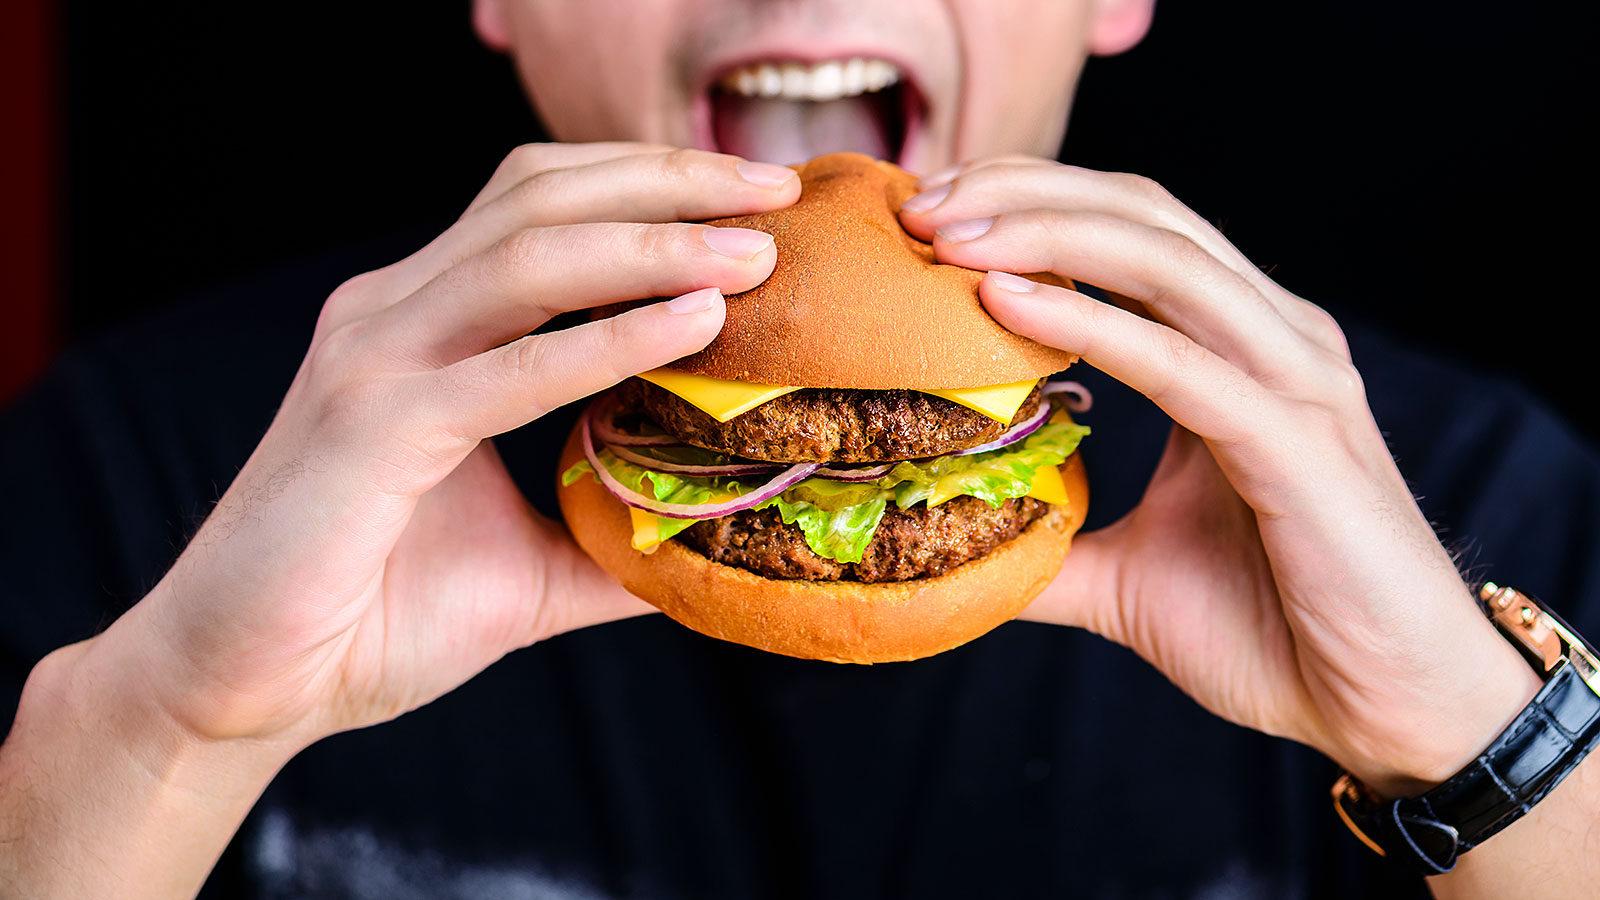 This study finds that overeating can be linked to this weird quality